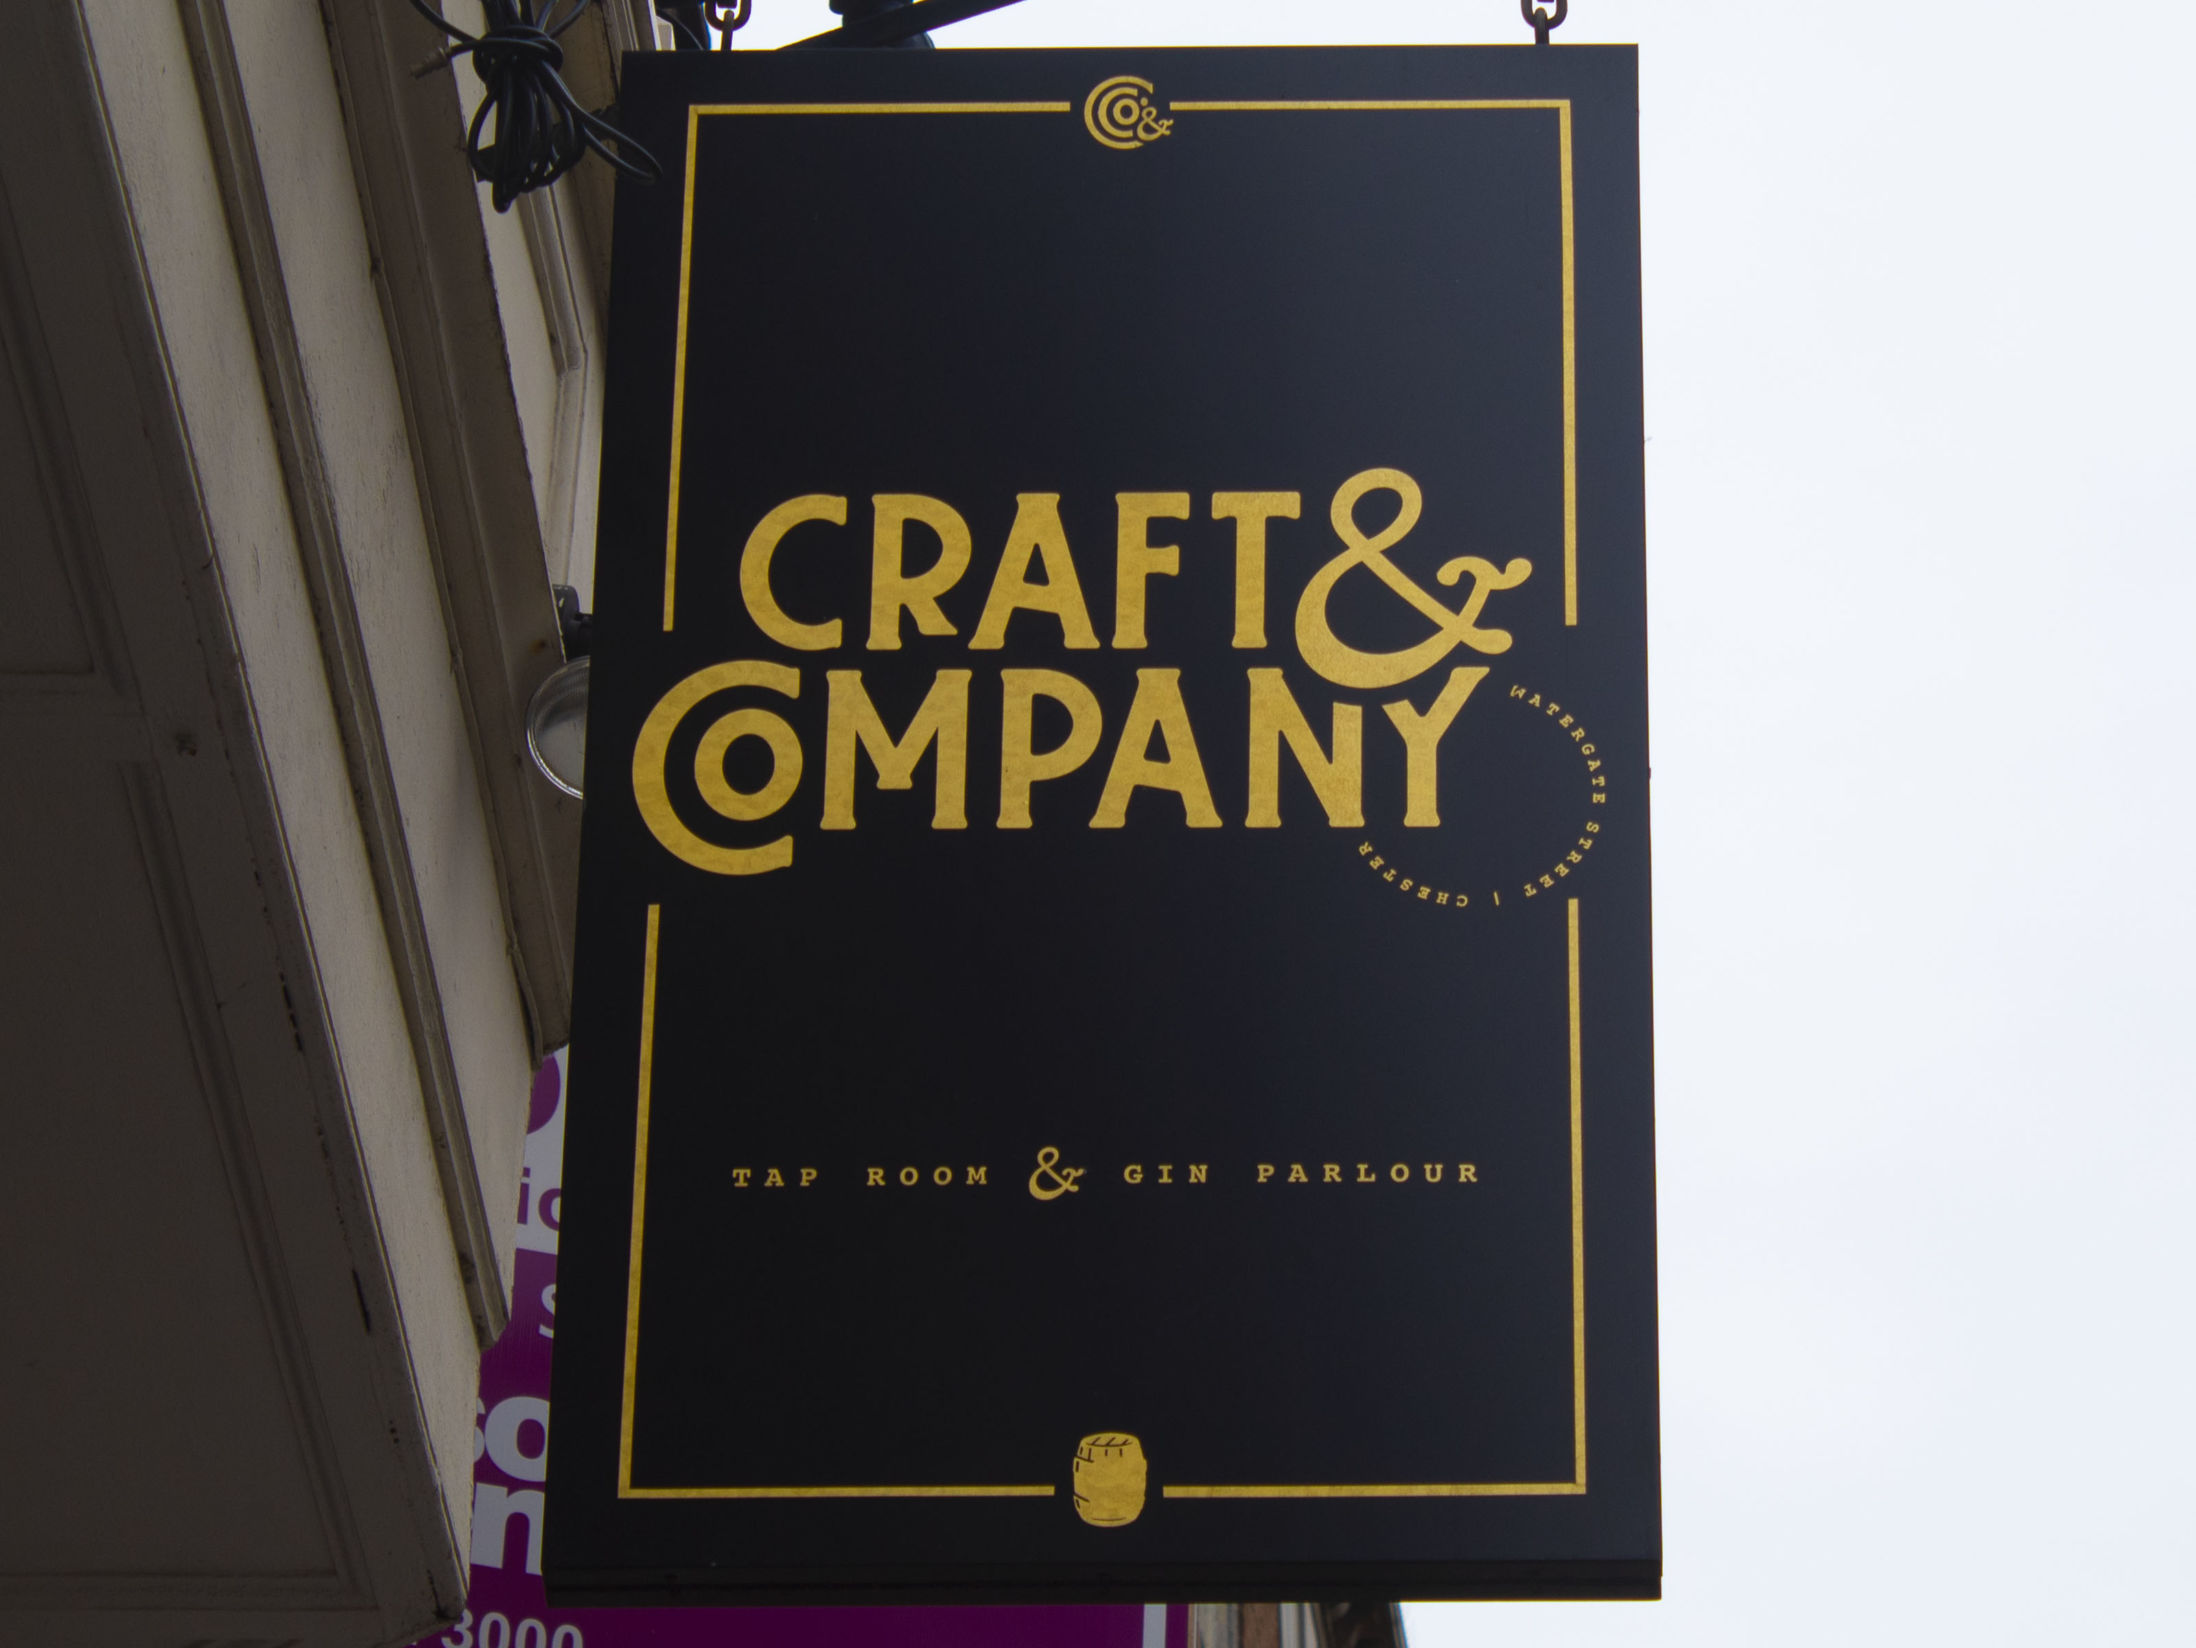 Craft & Company - Real Ale Pubs in Chester